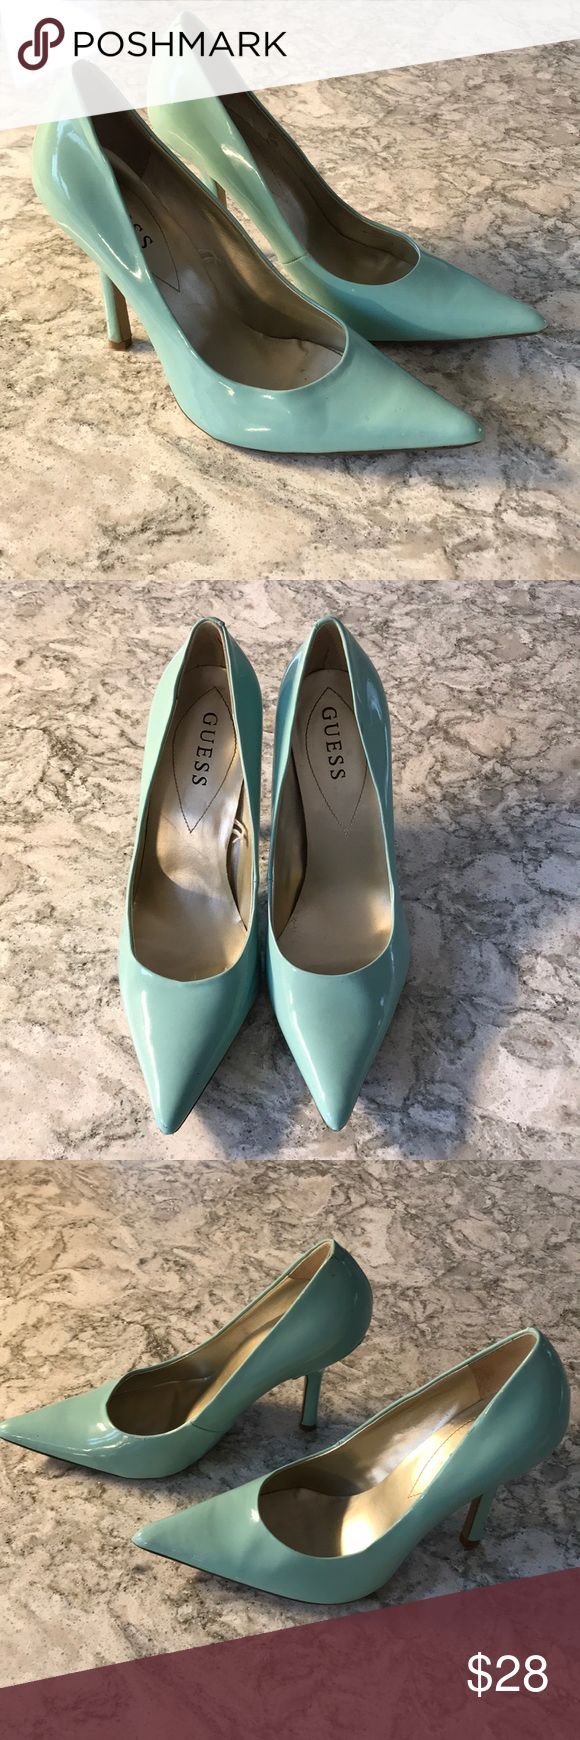 Guess mint pumps So cute for spring! Guess Shoes Heels